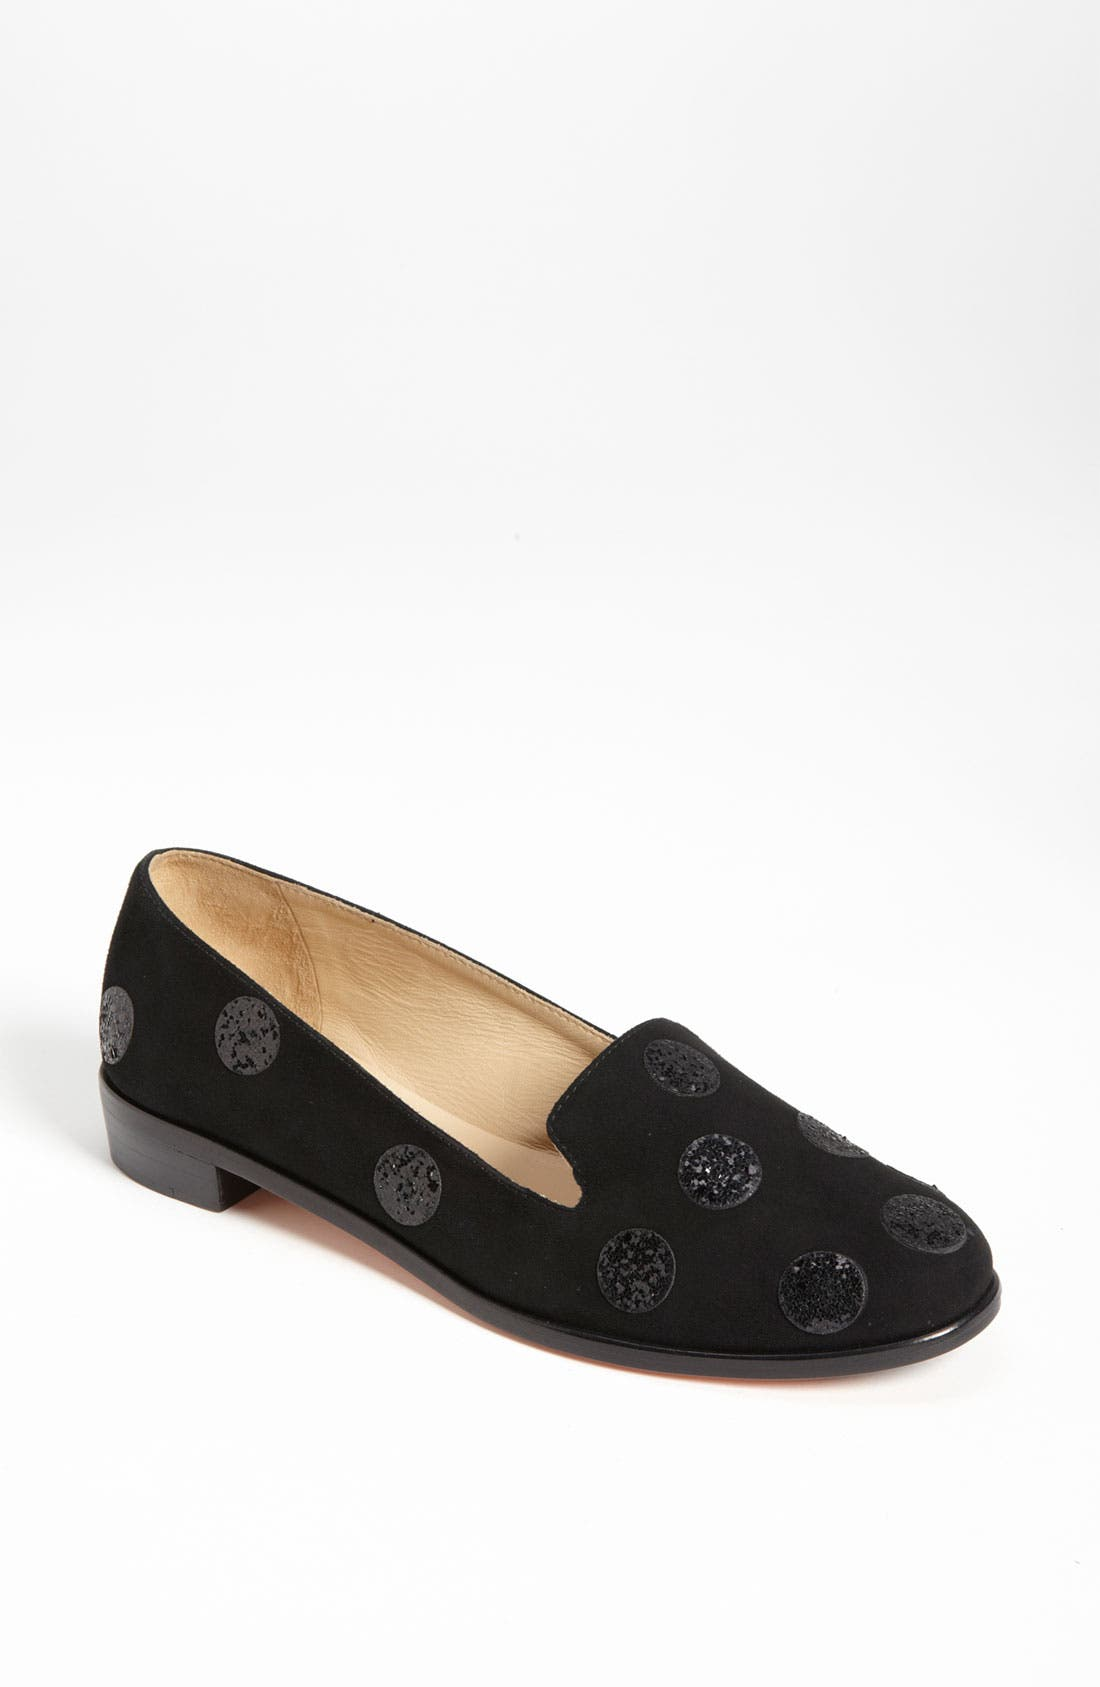 Alternate Image 1 Selected - kate spade new york 'carissa' loafer